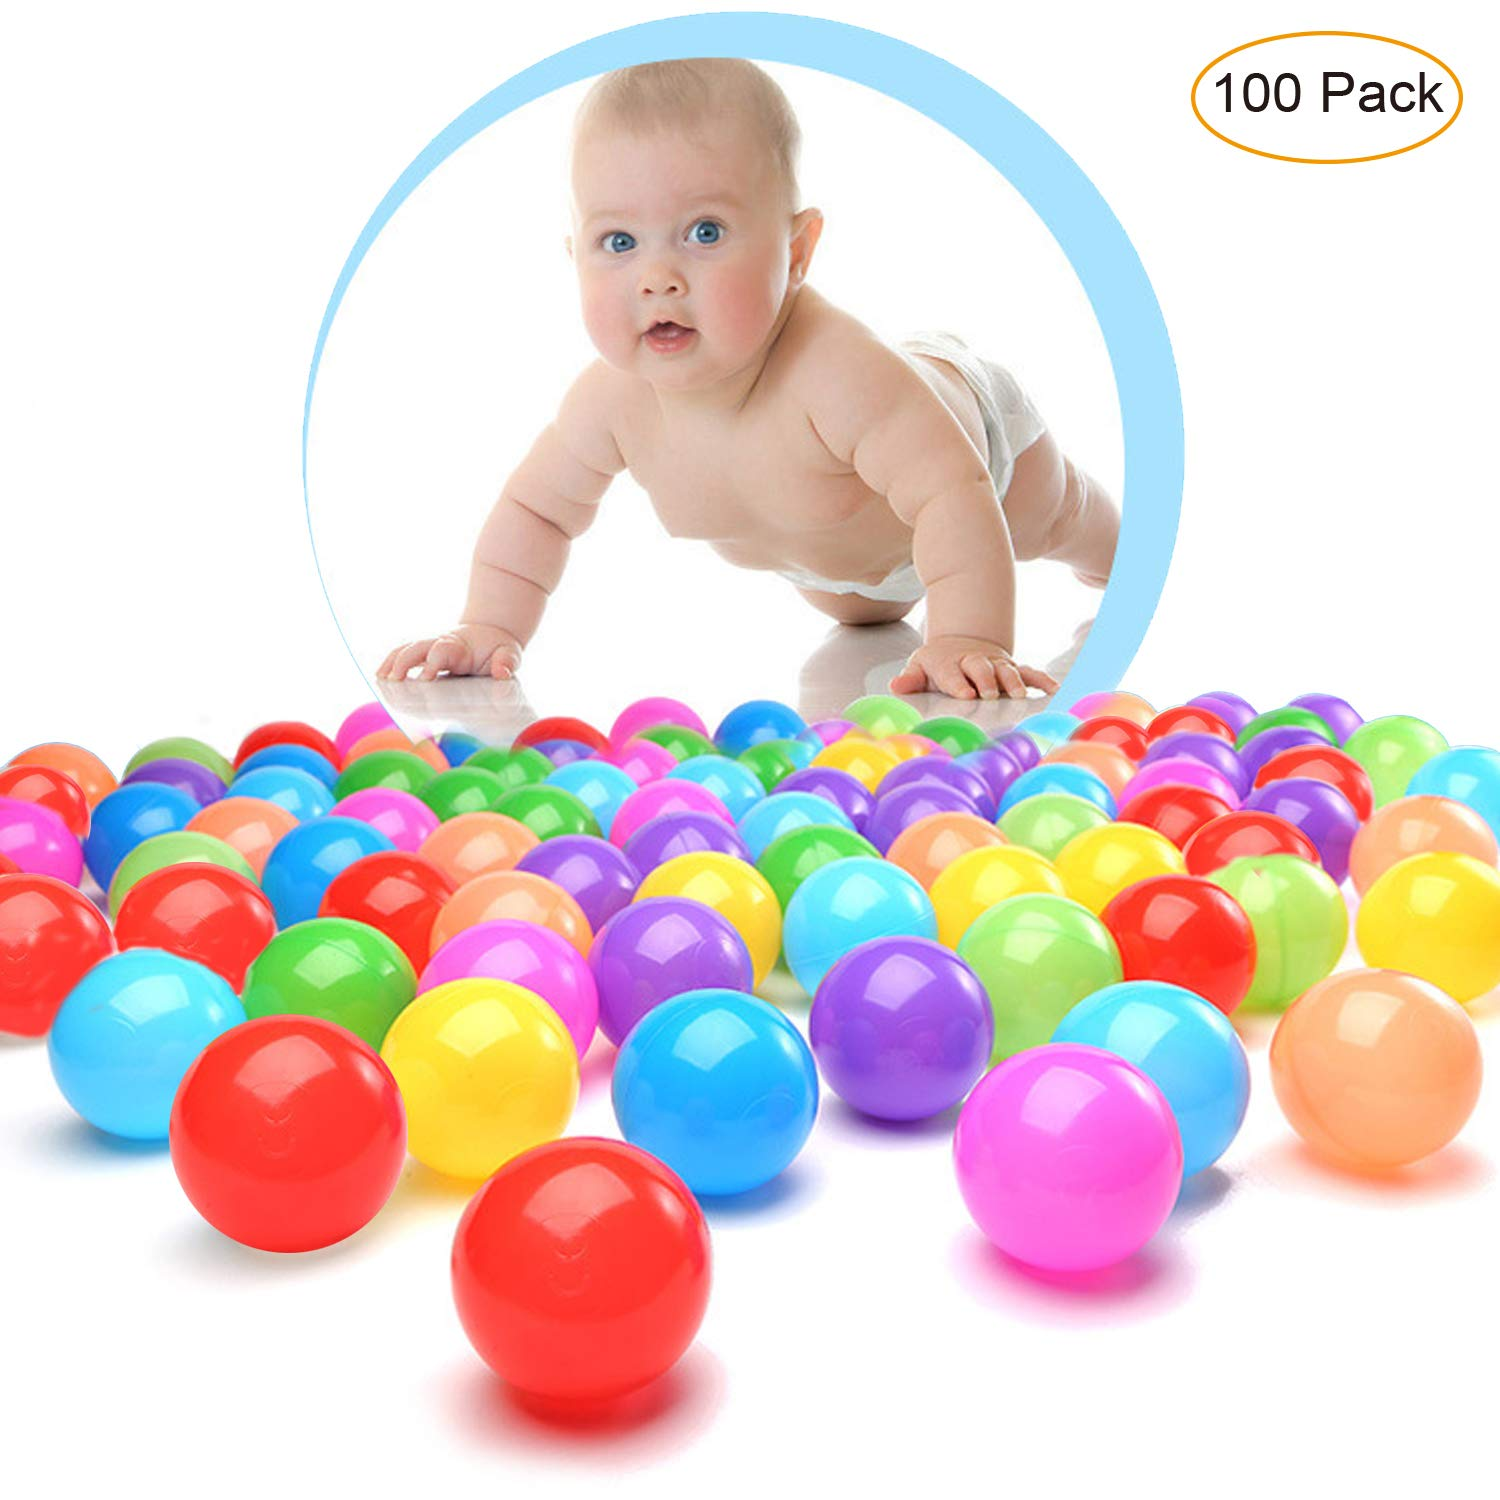 HOMEILY 100 Colorful Plastic Balls for Kids Babies Ball Pit Balls with Free BPA Free Crush Proof Ocean Balls for Toddlers Babies Toys